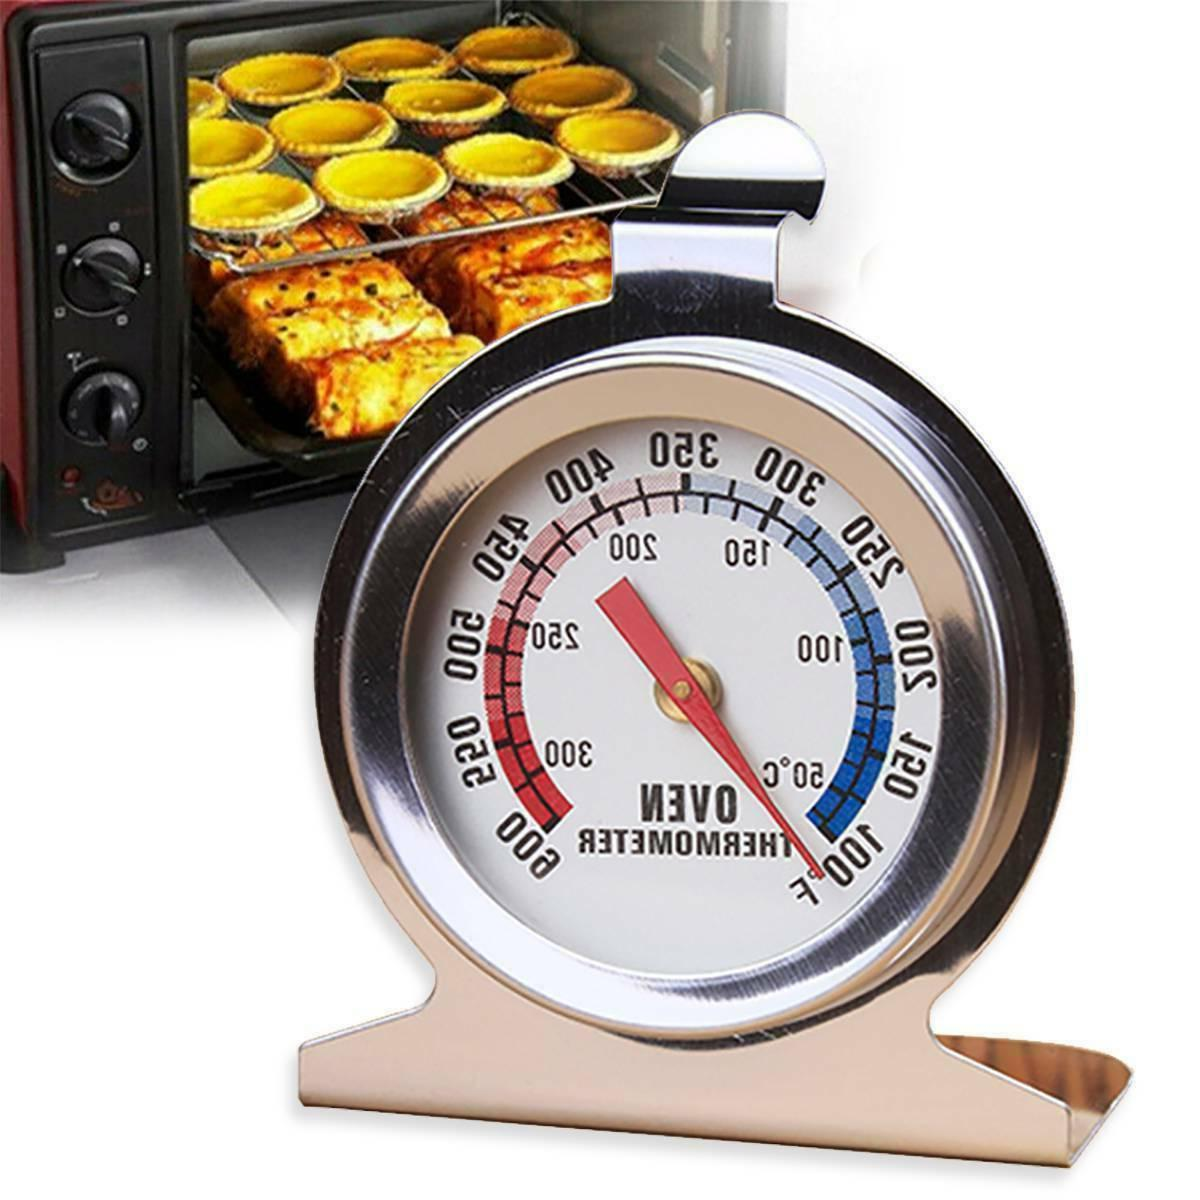 Oven Thermometer Steel Classic Meat Temperature Gauge